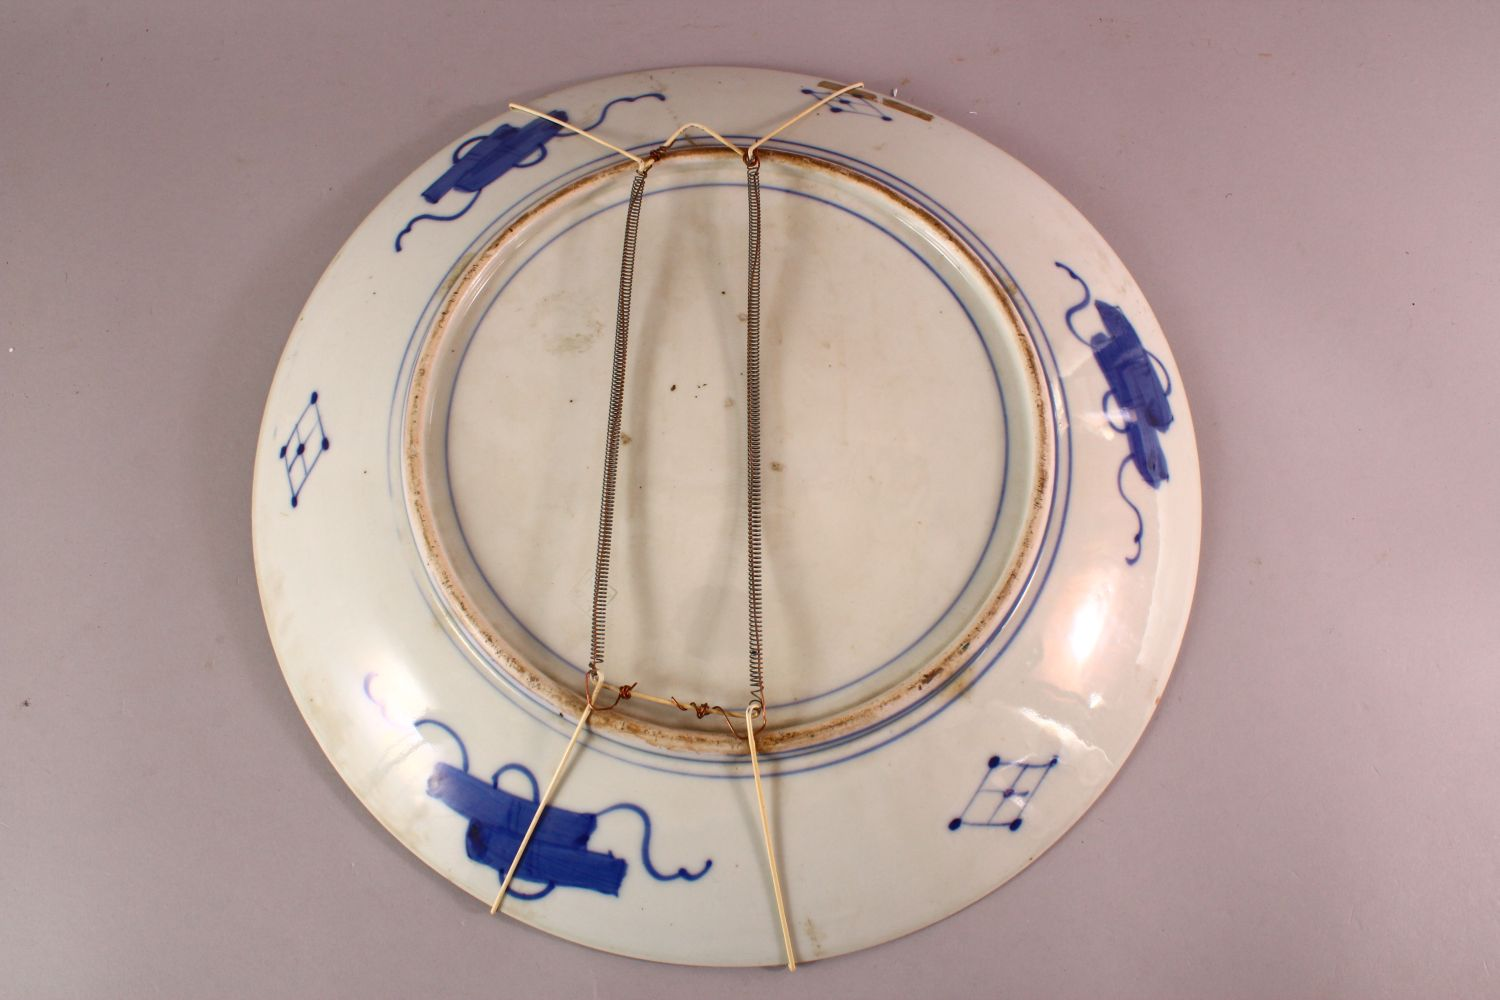 A LARGE JAPANESE POLYCHROME PORCELAIN CHARGER, depicting females in a garden setting, the - Image 5 of 5